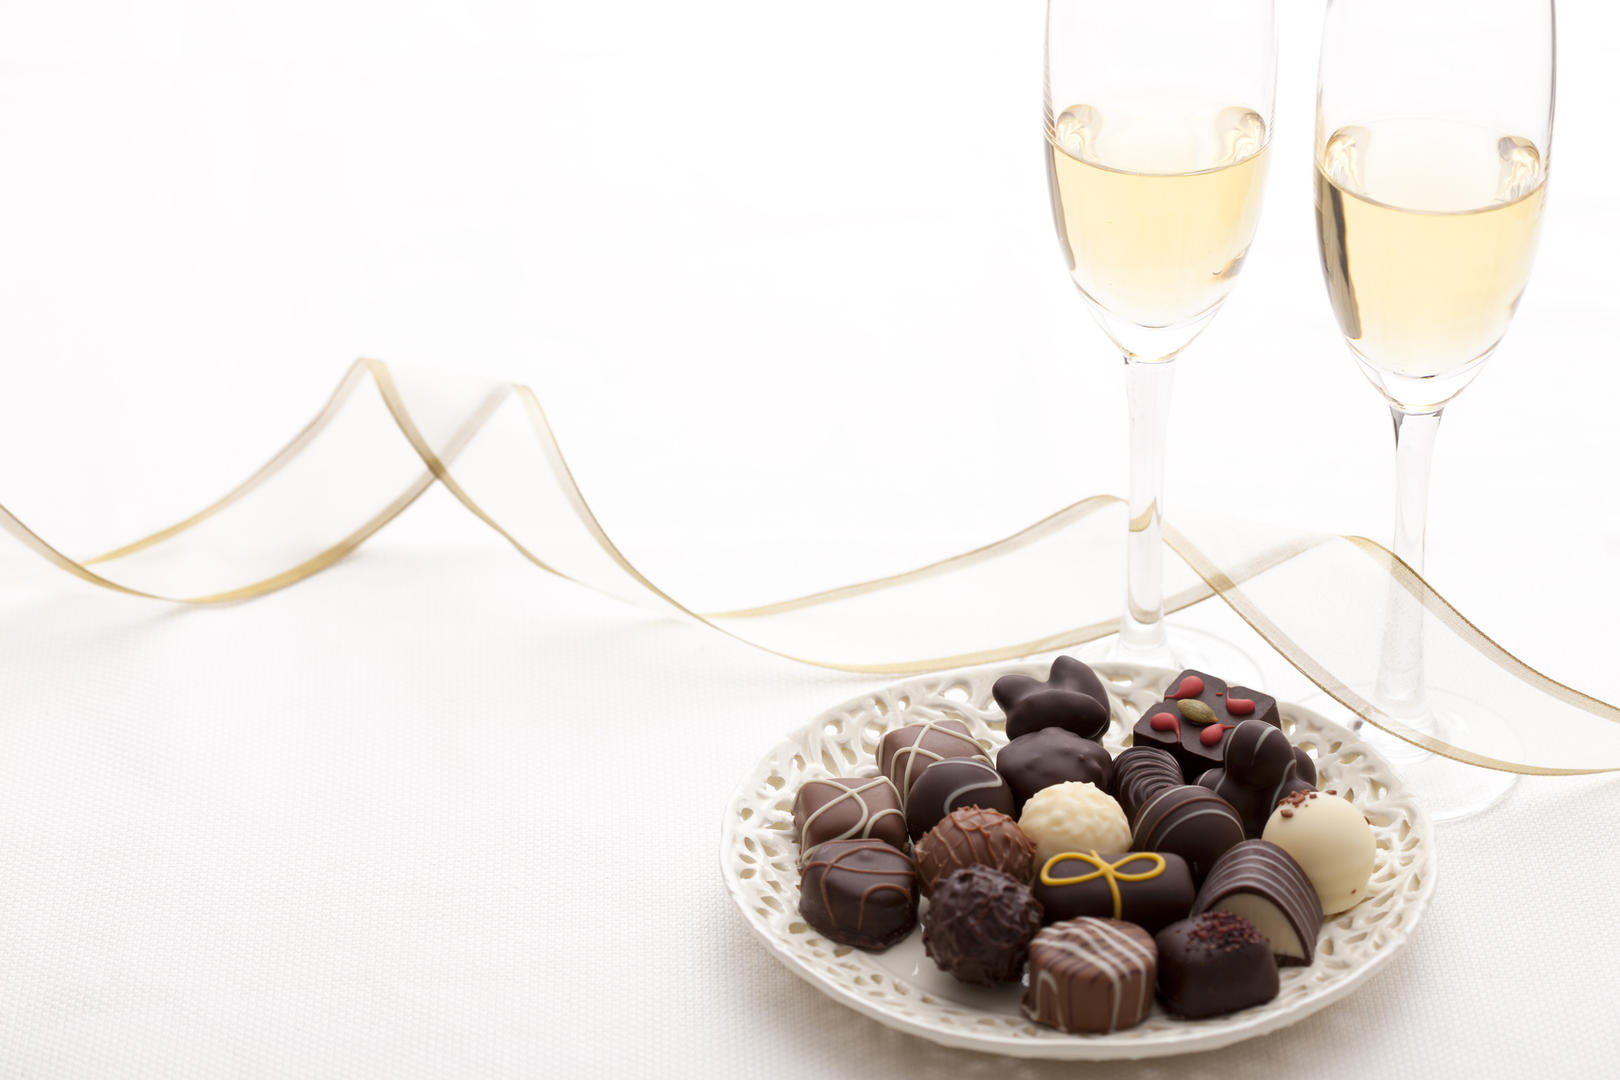 Prosecco and chocolate